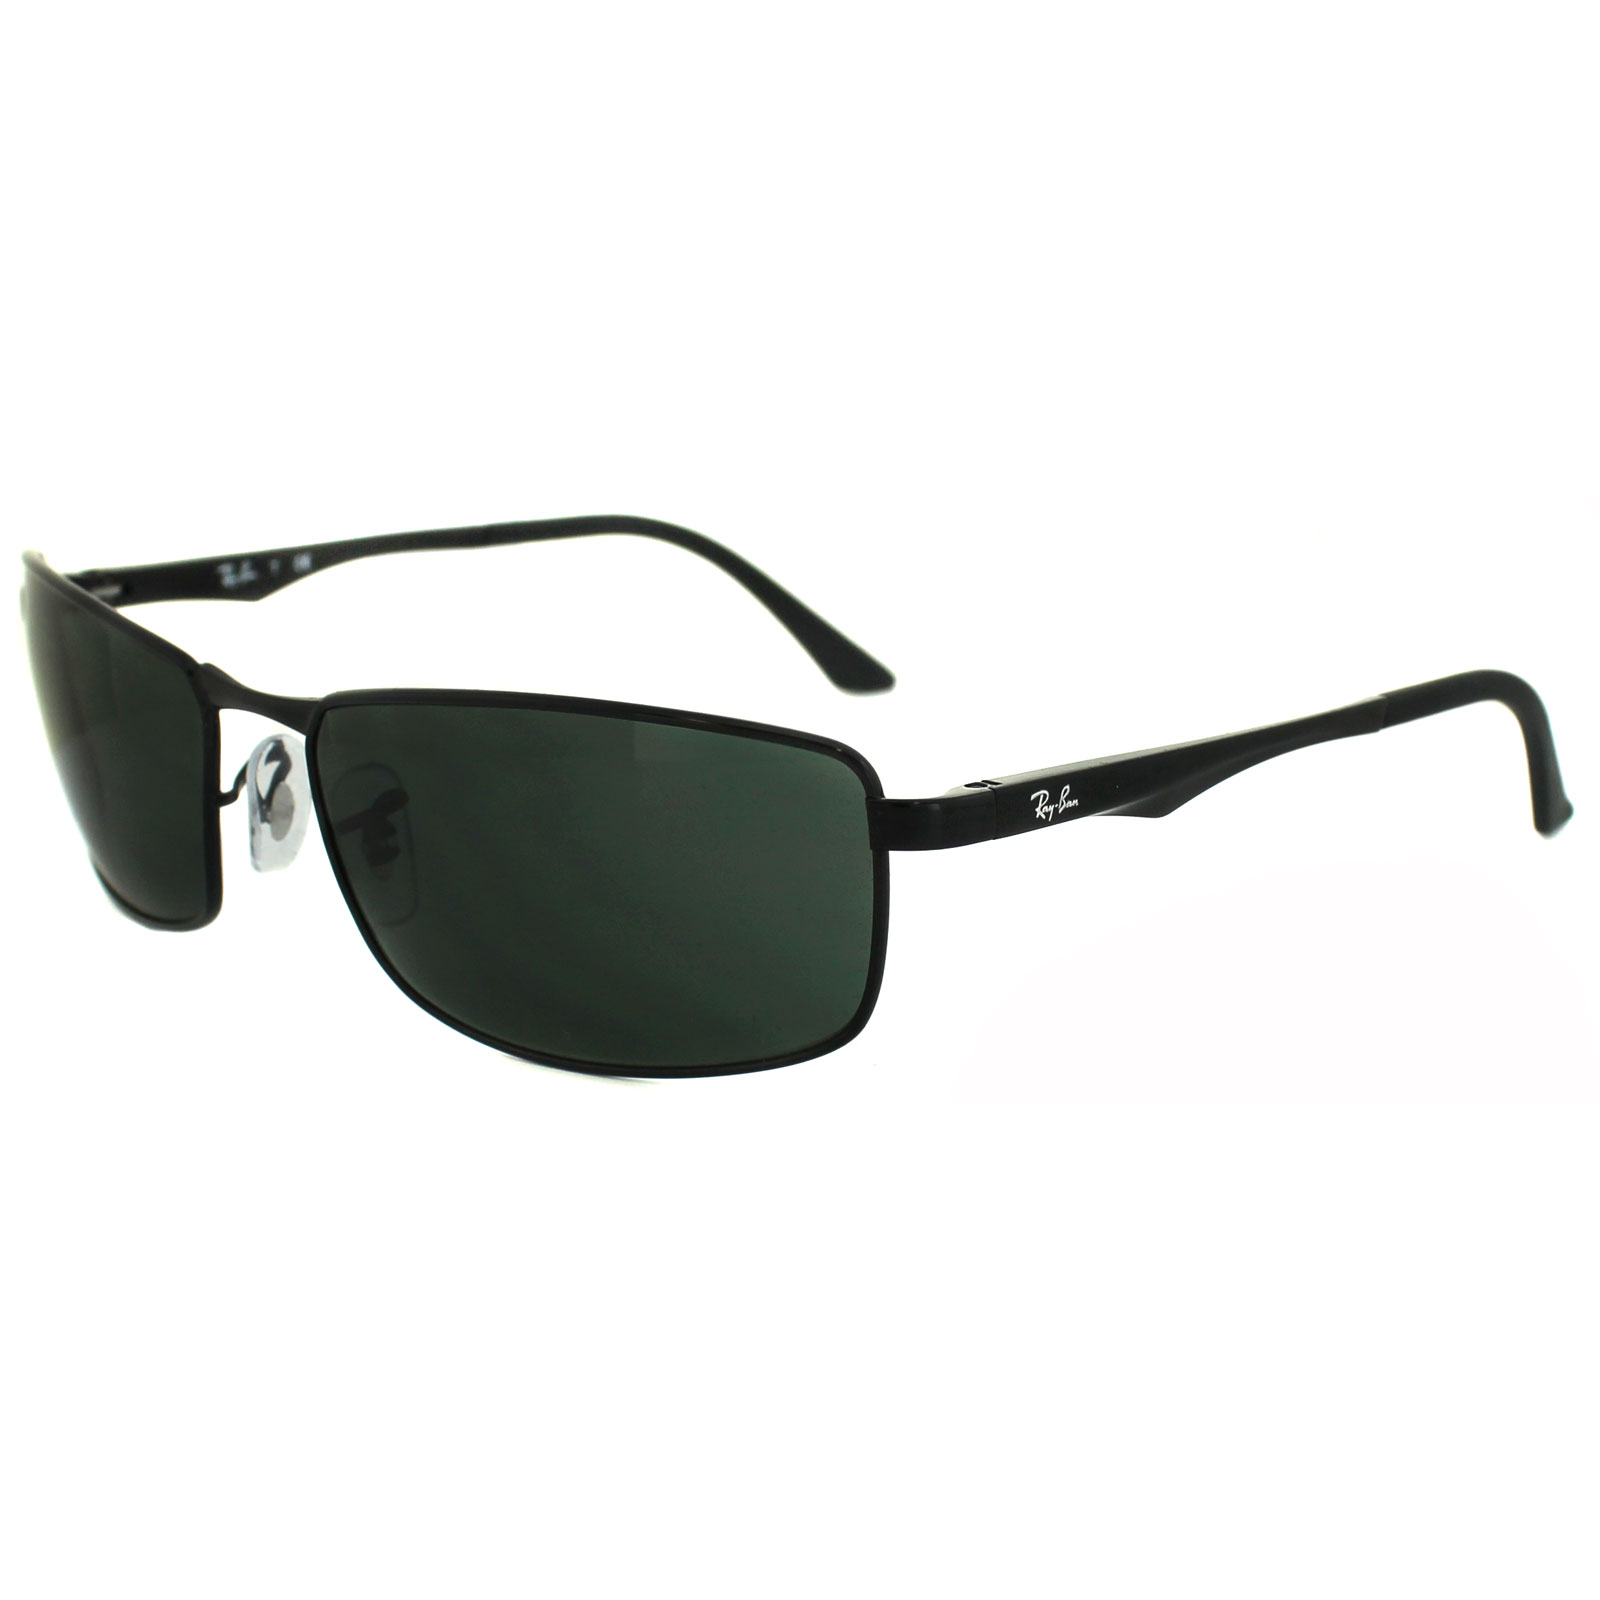 79ea855710d Cheapest Ray Ban Sunglasses Uk « Heritage Malta